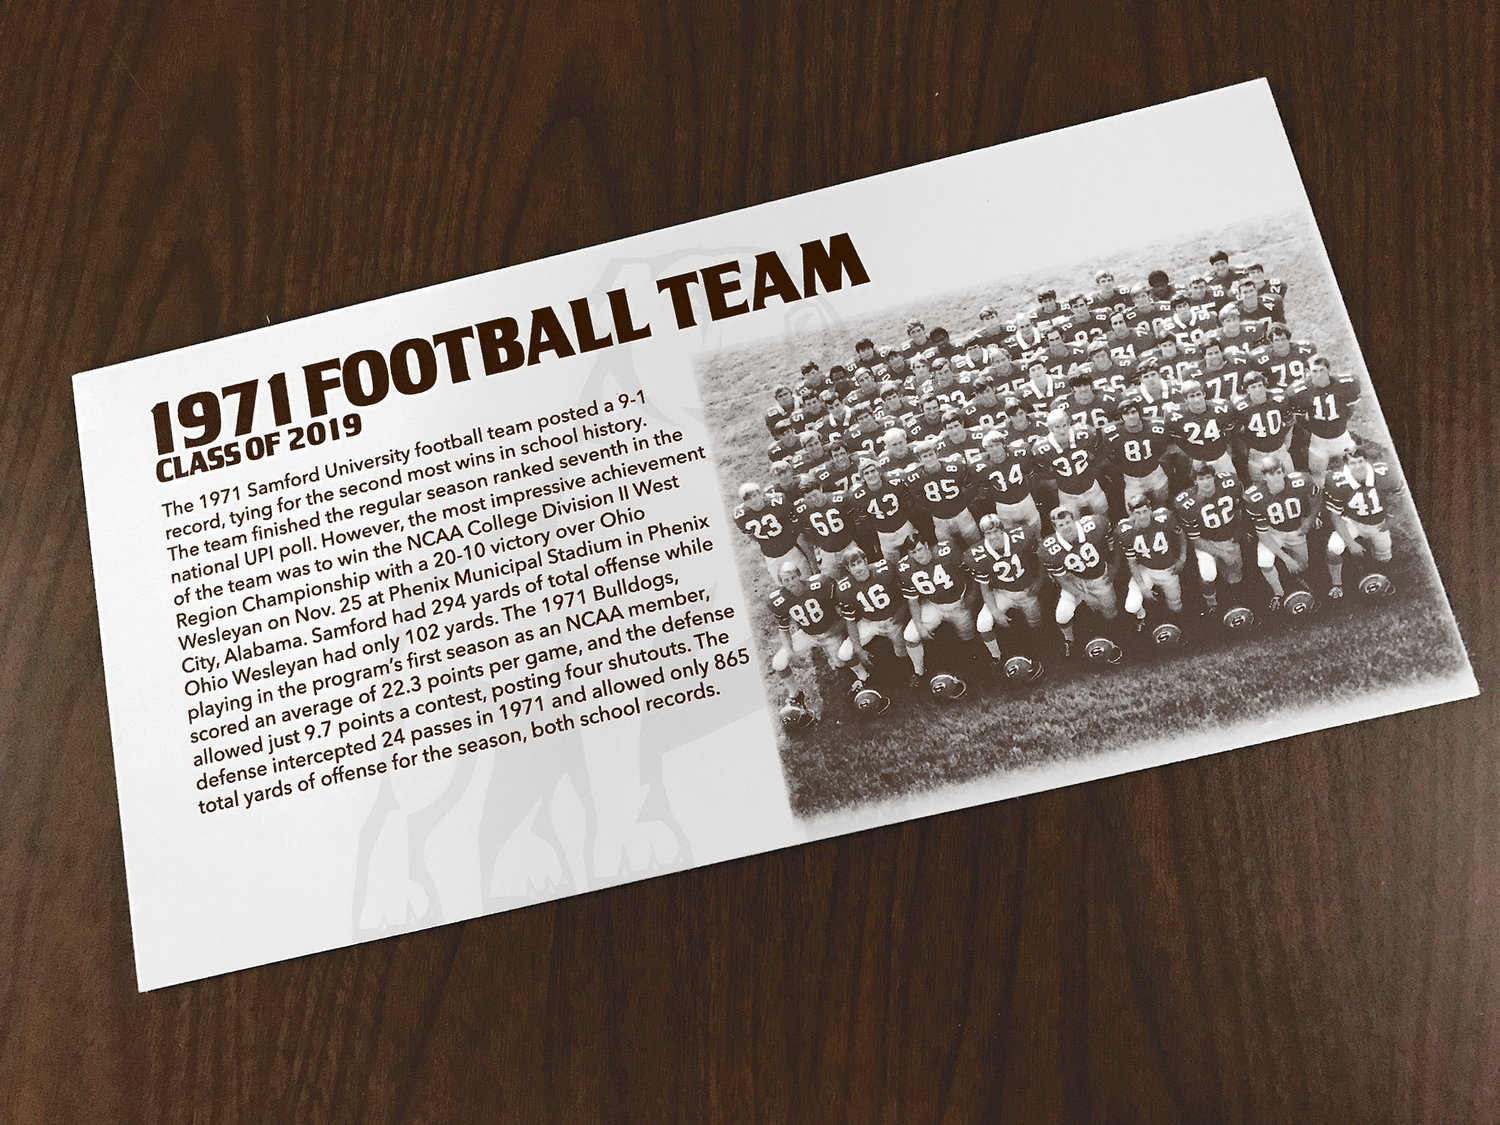 Pictured is a commemorative plaque that each player of the 1971 Samford football team received.